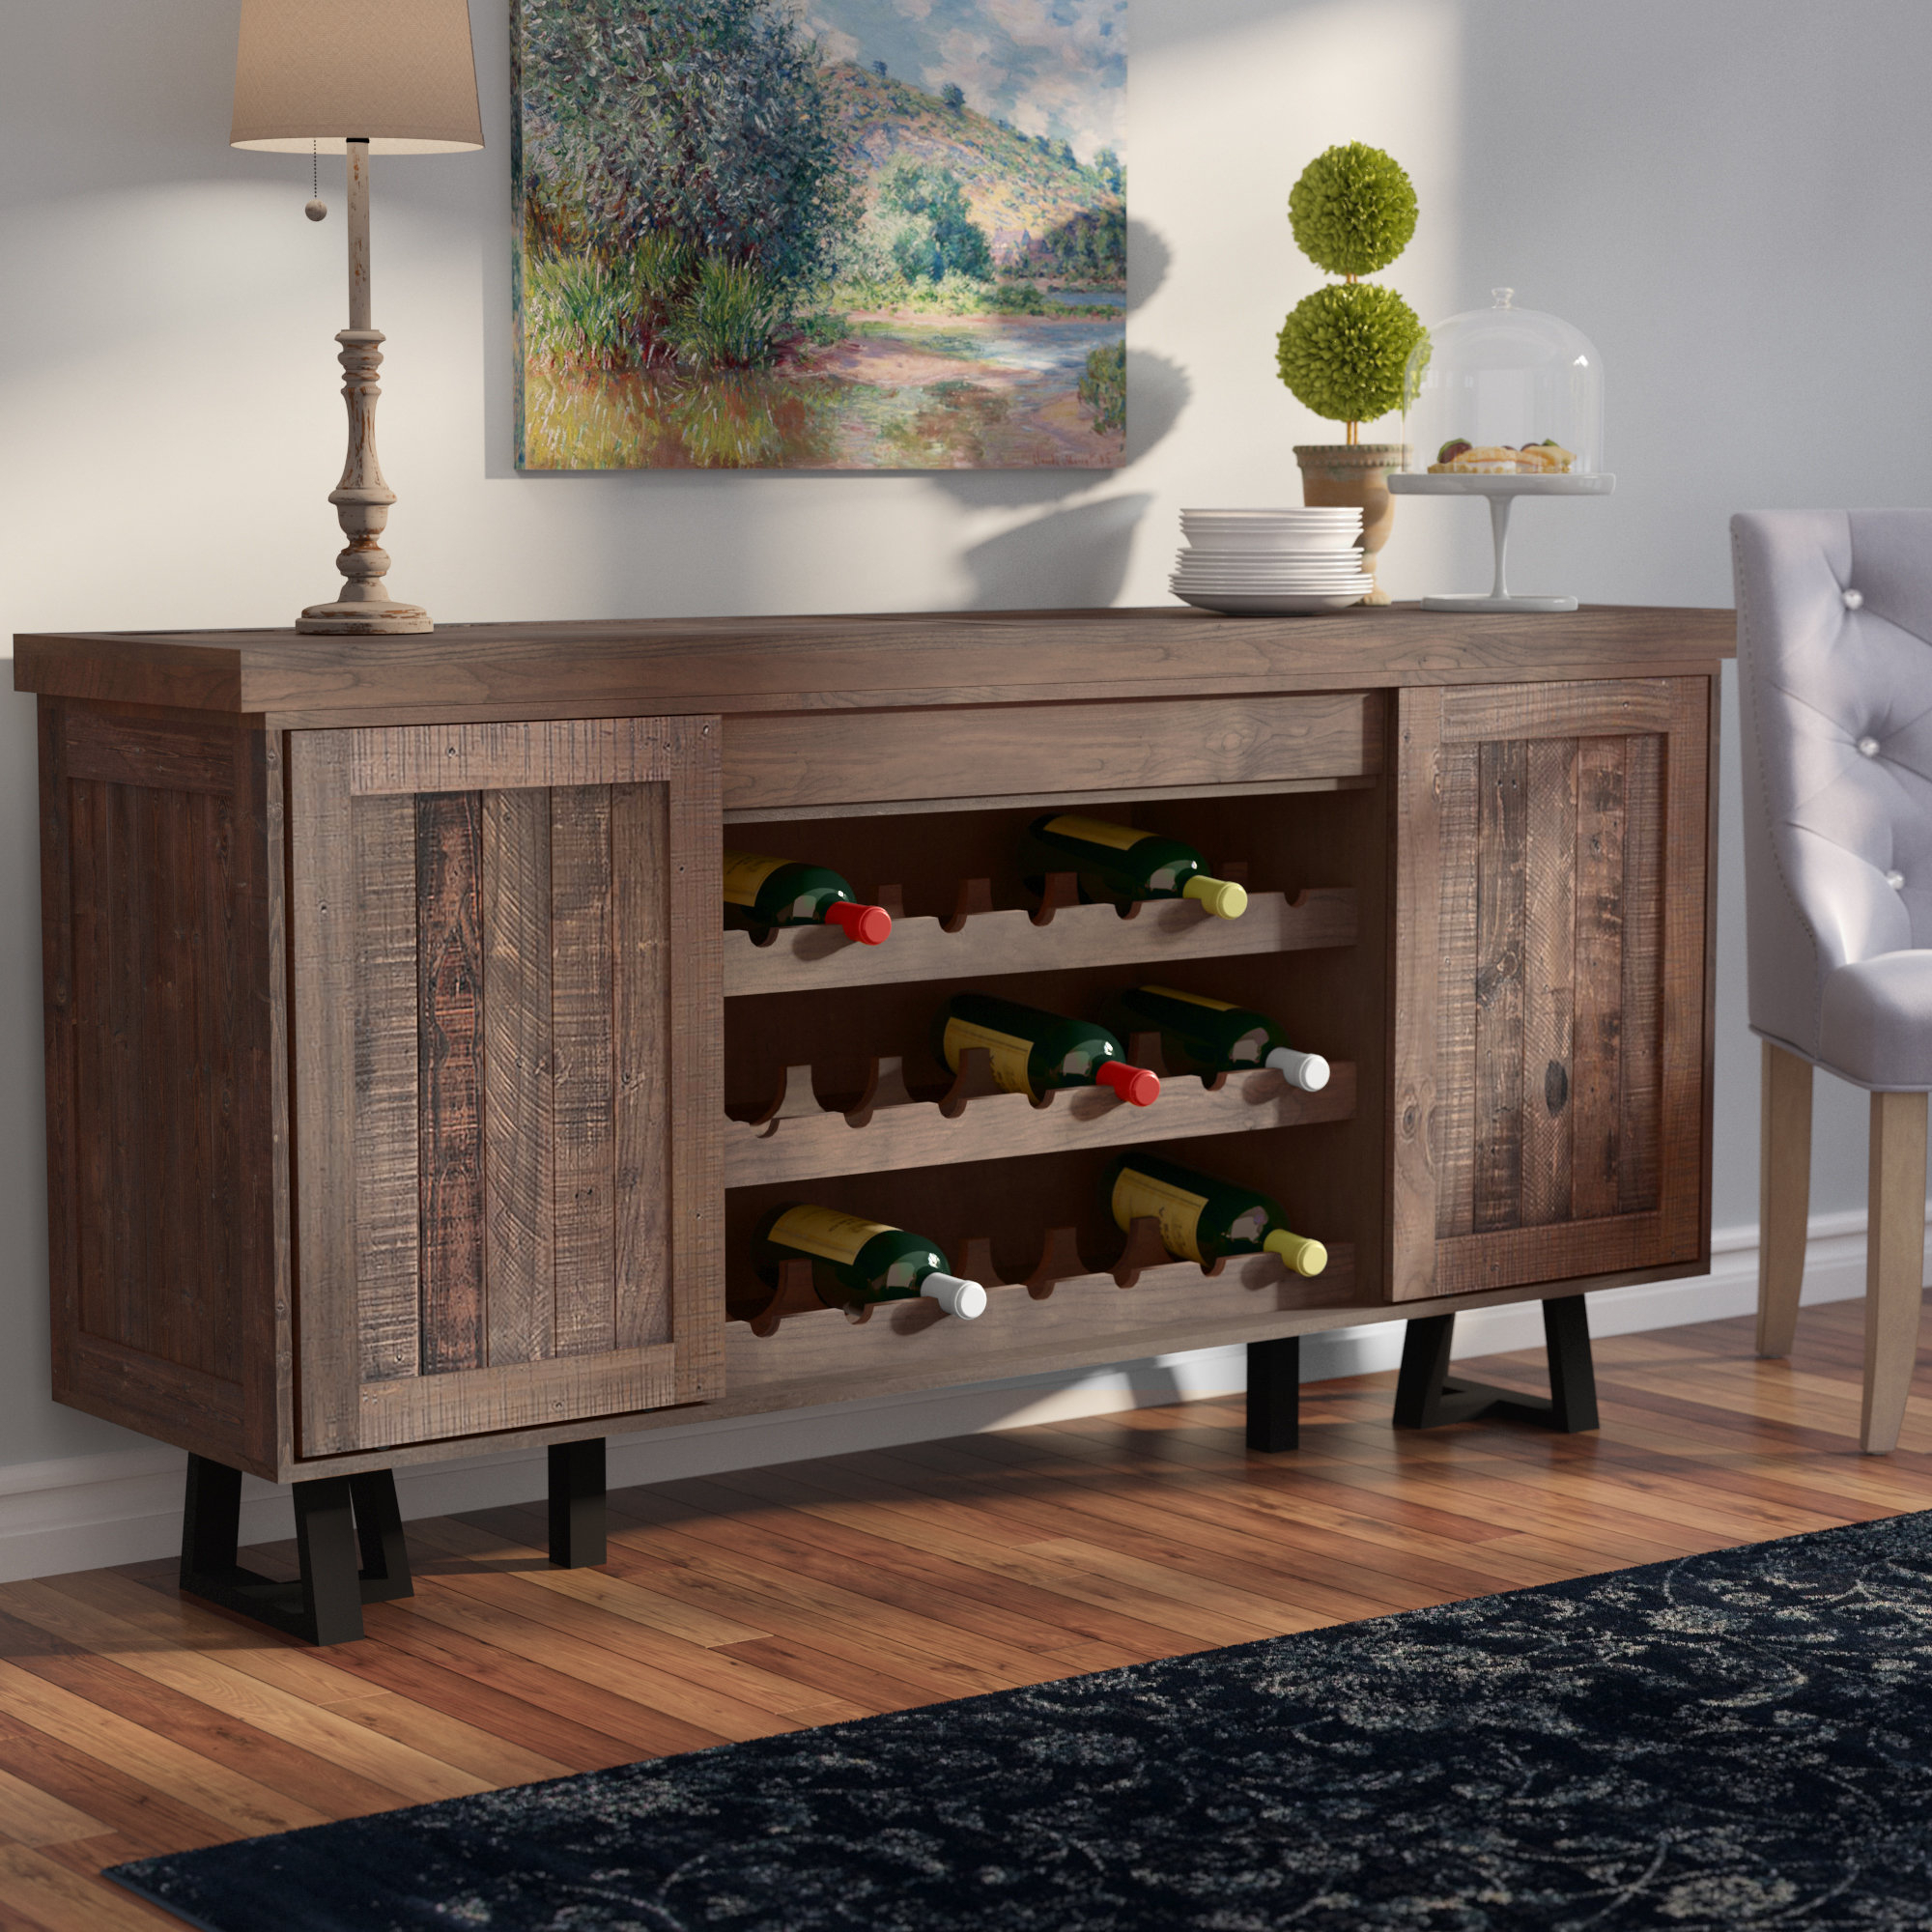 70 Inch Credenza You'll Love In 2019 | Wayfair With Regard To Caines Credenzas (View 2 of 30)